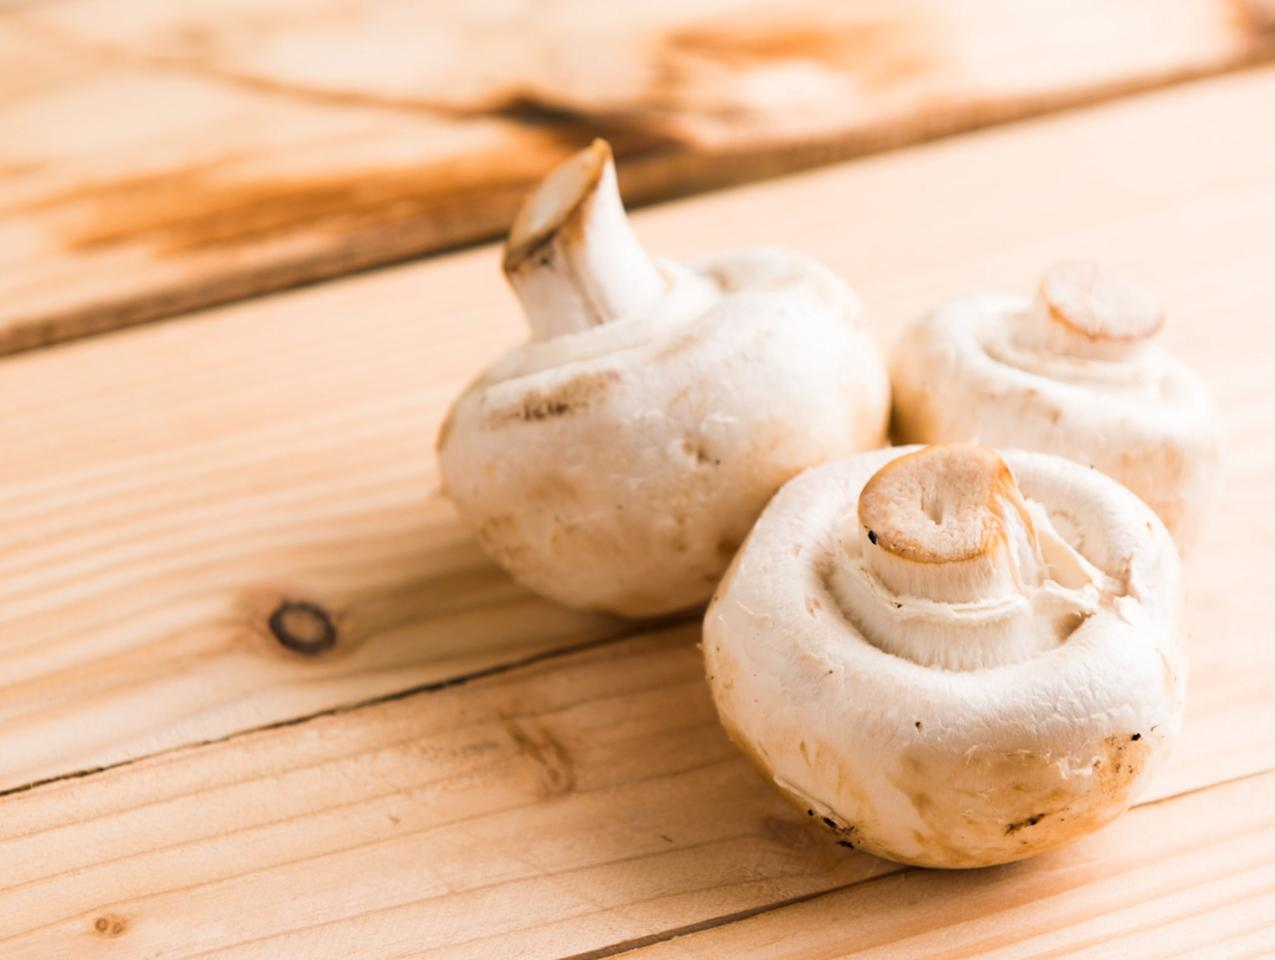 """<p>Mushrooms are not only delicious and versatile but they're also gentle on the planet. Production does not require as much water or energy vs. many other produce choices. In fact, only <a href=""""https://www.mushroomcouncil.com/wp-content/uploads/2017/12/Mushroom-Sustainability-Story-2017.pdf"""" target=""""_blank"""" class=""""ga-track"""" data-ga-category=""""Related"""" data-ga-label=""""https://www.mushroomcouncil.com/wp-content/uploads/2017/12/Mushroom-Sustainability-Story-2017.pdf"""" data-ga-action=""""In-Line Links"""">1.8 gallons of water and 1.0 kilowatt hours of energy are required to grow one pound of mushrooms</a>. Relatively speaking, that's very conservative. Additionally, it generates only .7 pounds of CO2 equivalent emissions – again, a relatively conservative number.</p> <p>Another earth-friendly feature of mushrooms? One million pounds of mushrooms can be produced on just one acre. That's a great yield when focusing on conservation.</p> <p>Eating more mushrooms is as simple as chopping them to match the consistency of ground beef and adding them to tomato sauce for a mushroom """"bolognaise,"""" dehydrating them and eating them as jerky, or adding them to a sandwich for a meaty alternative to beef.</p>"""